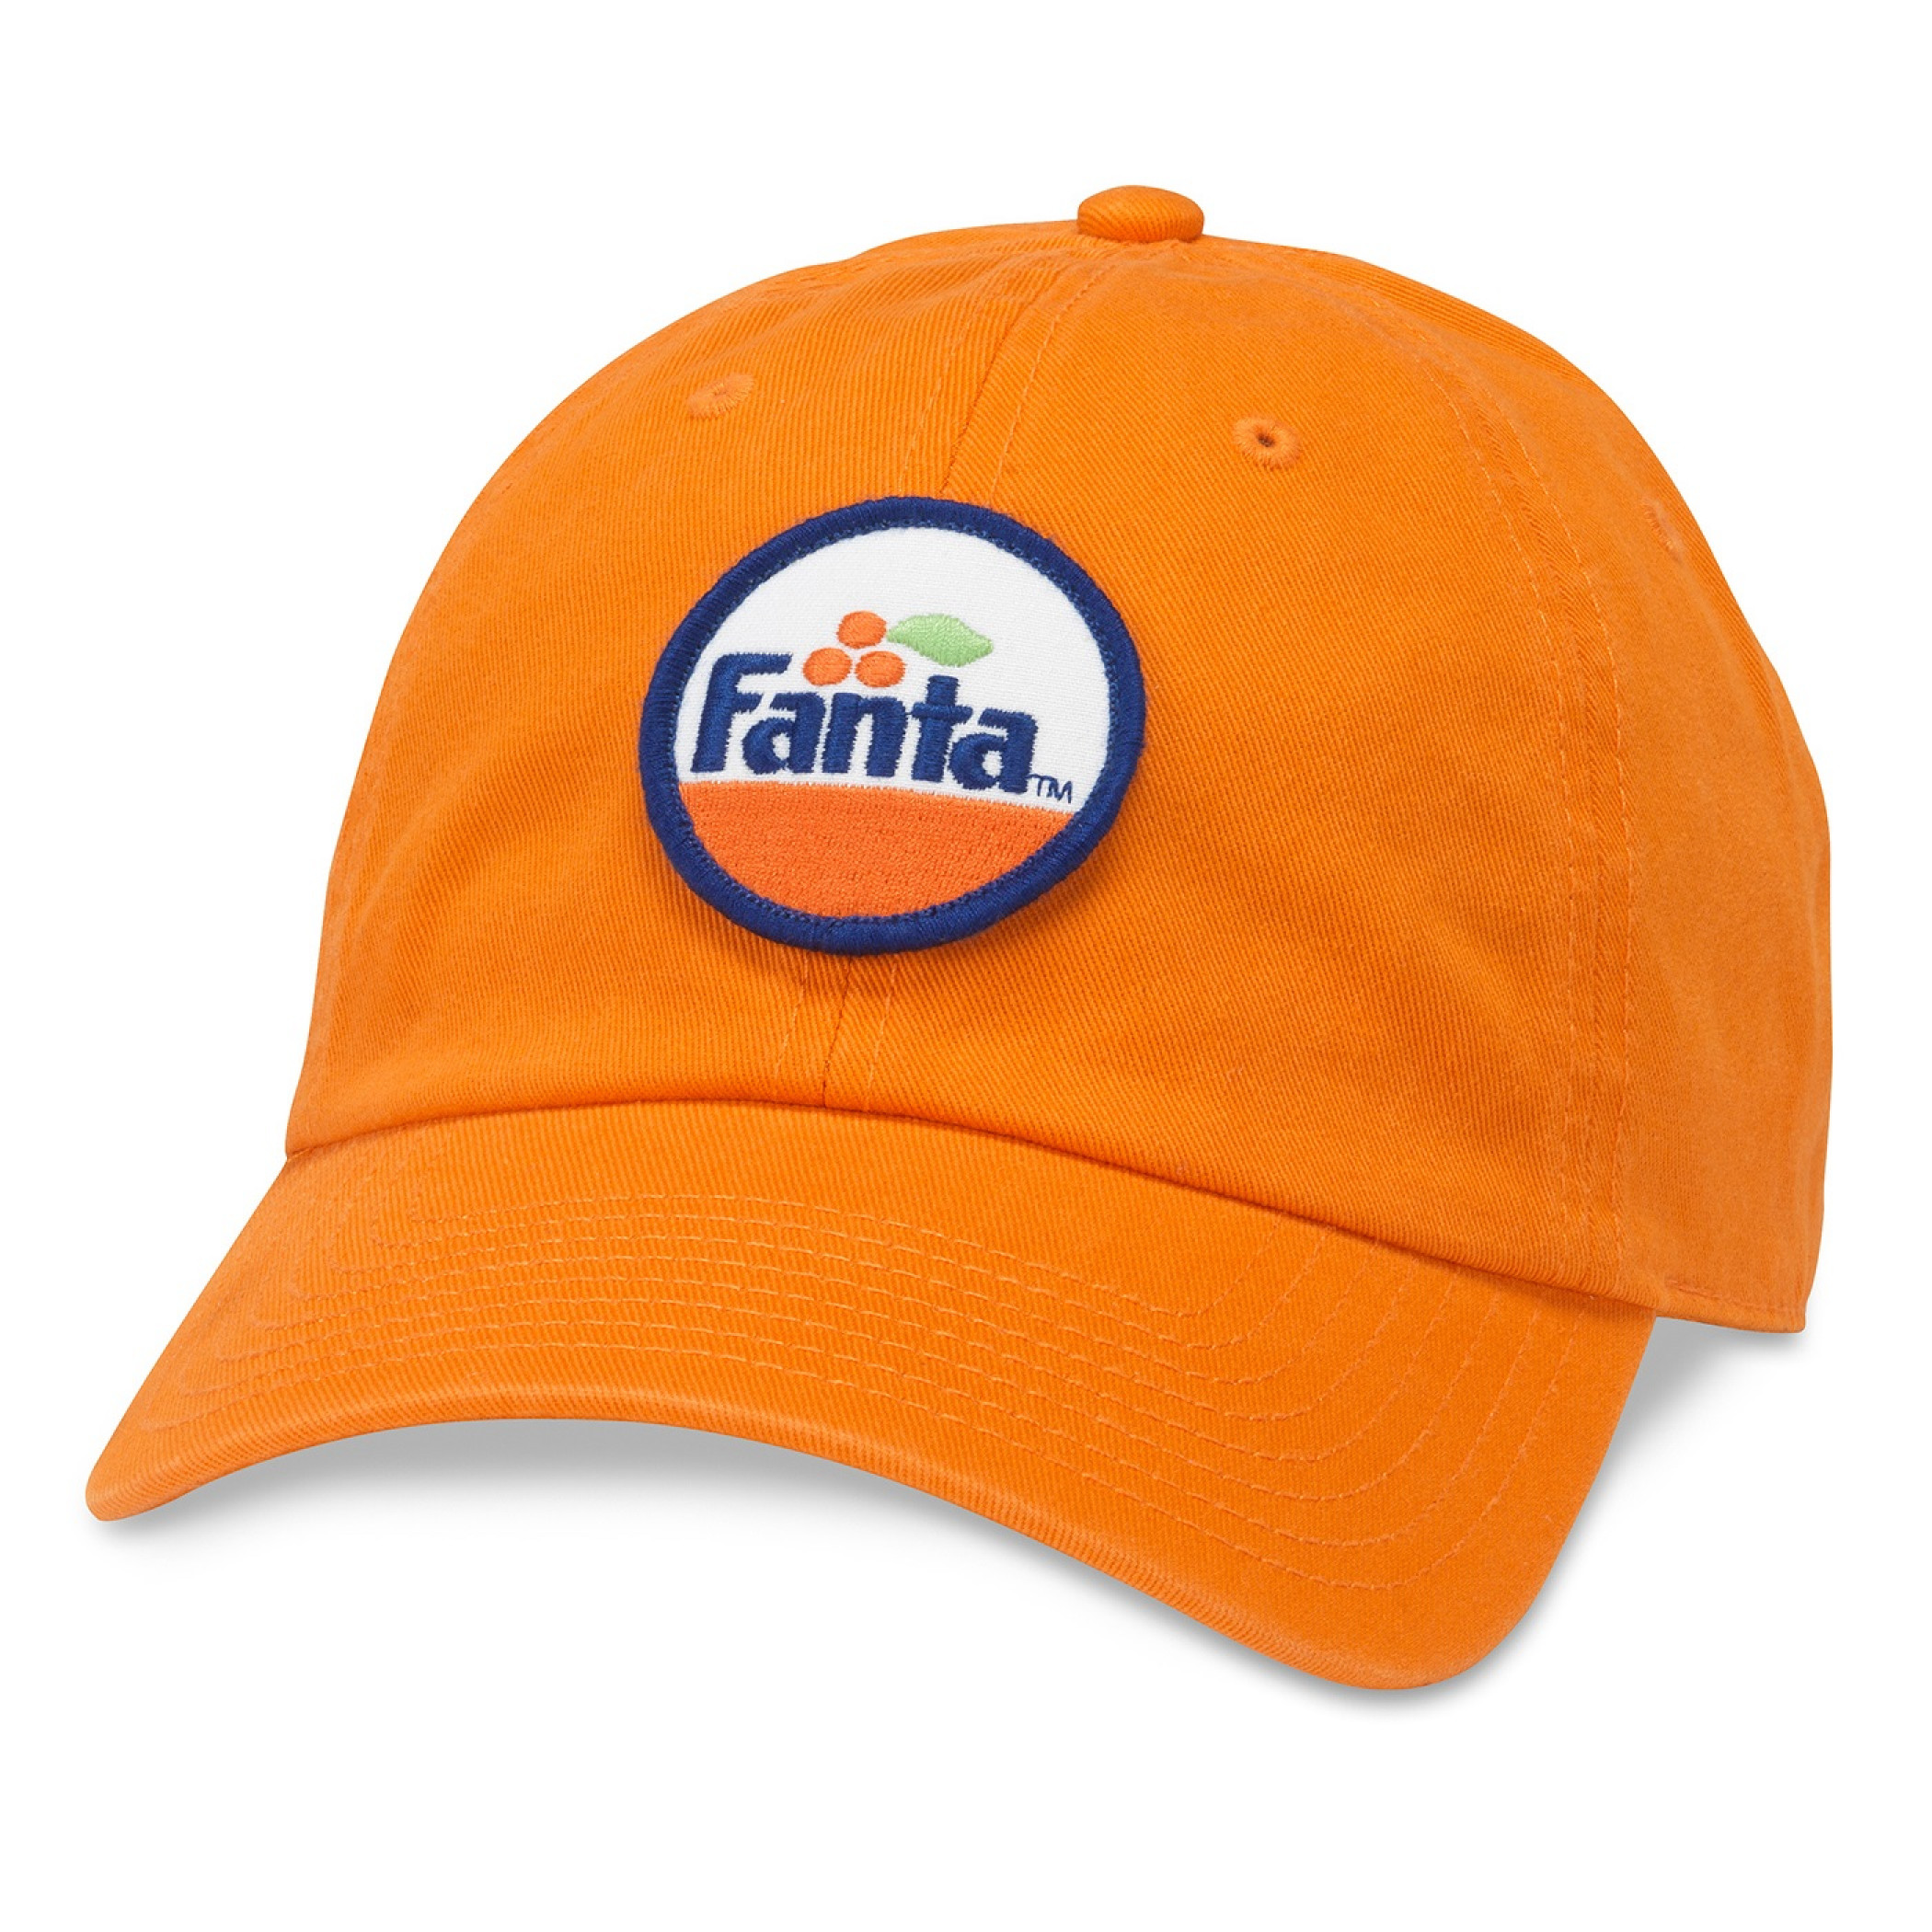 Fanta Logo Adjustable Orange Hat